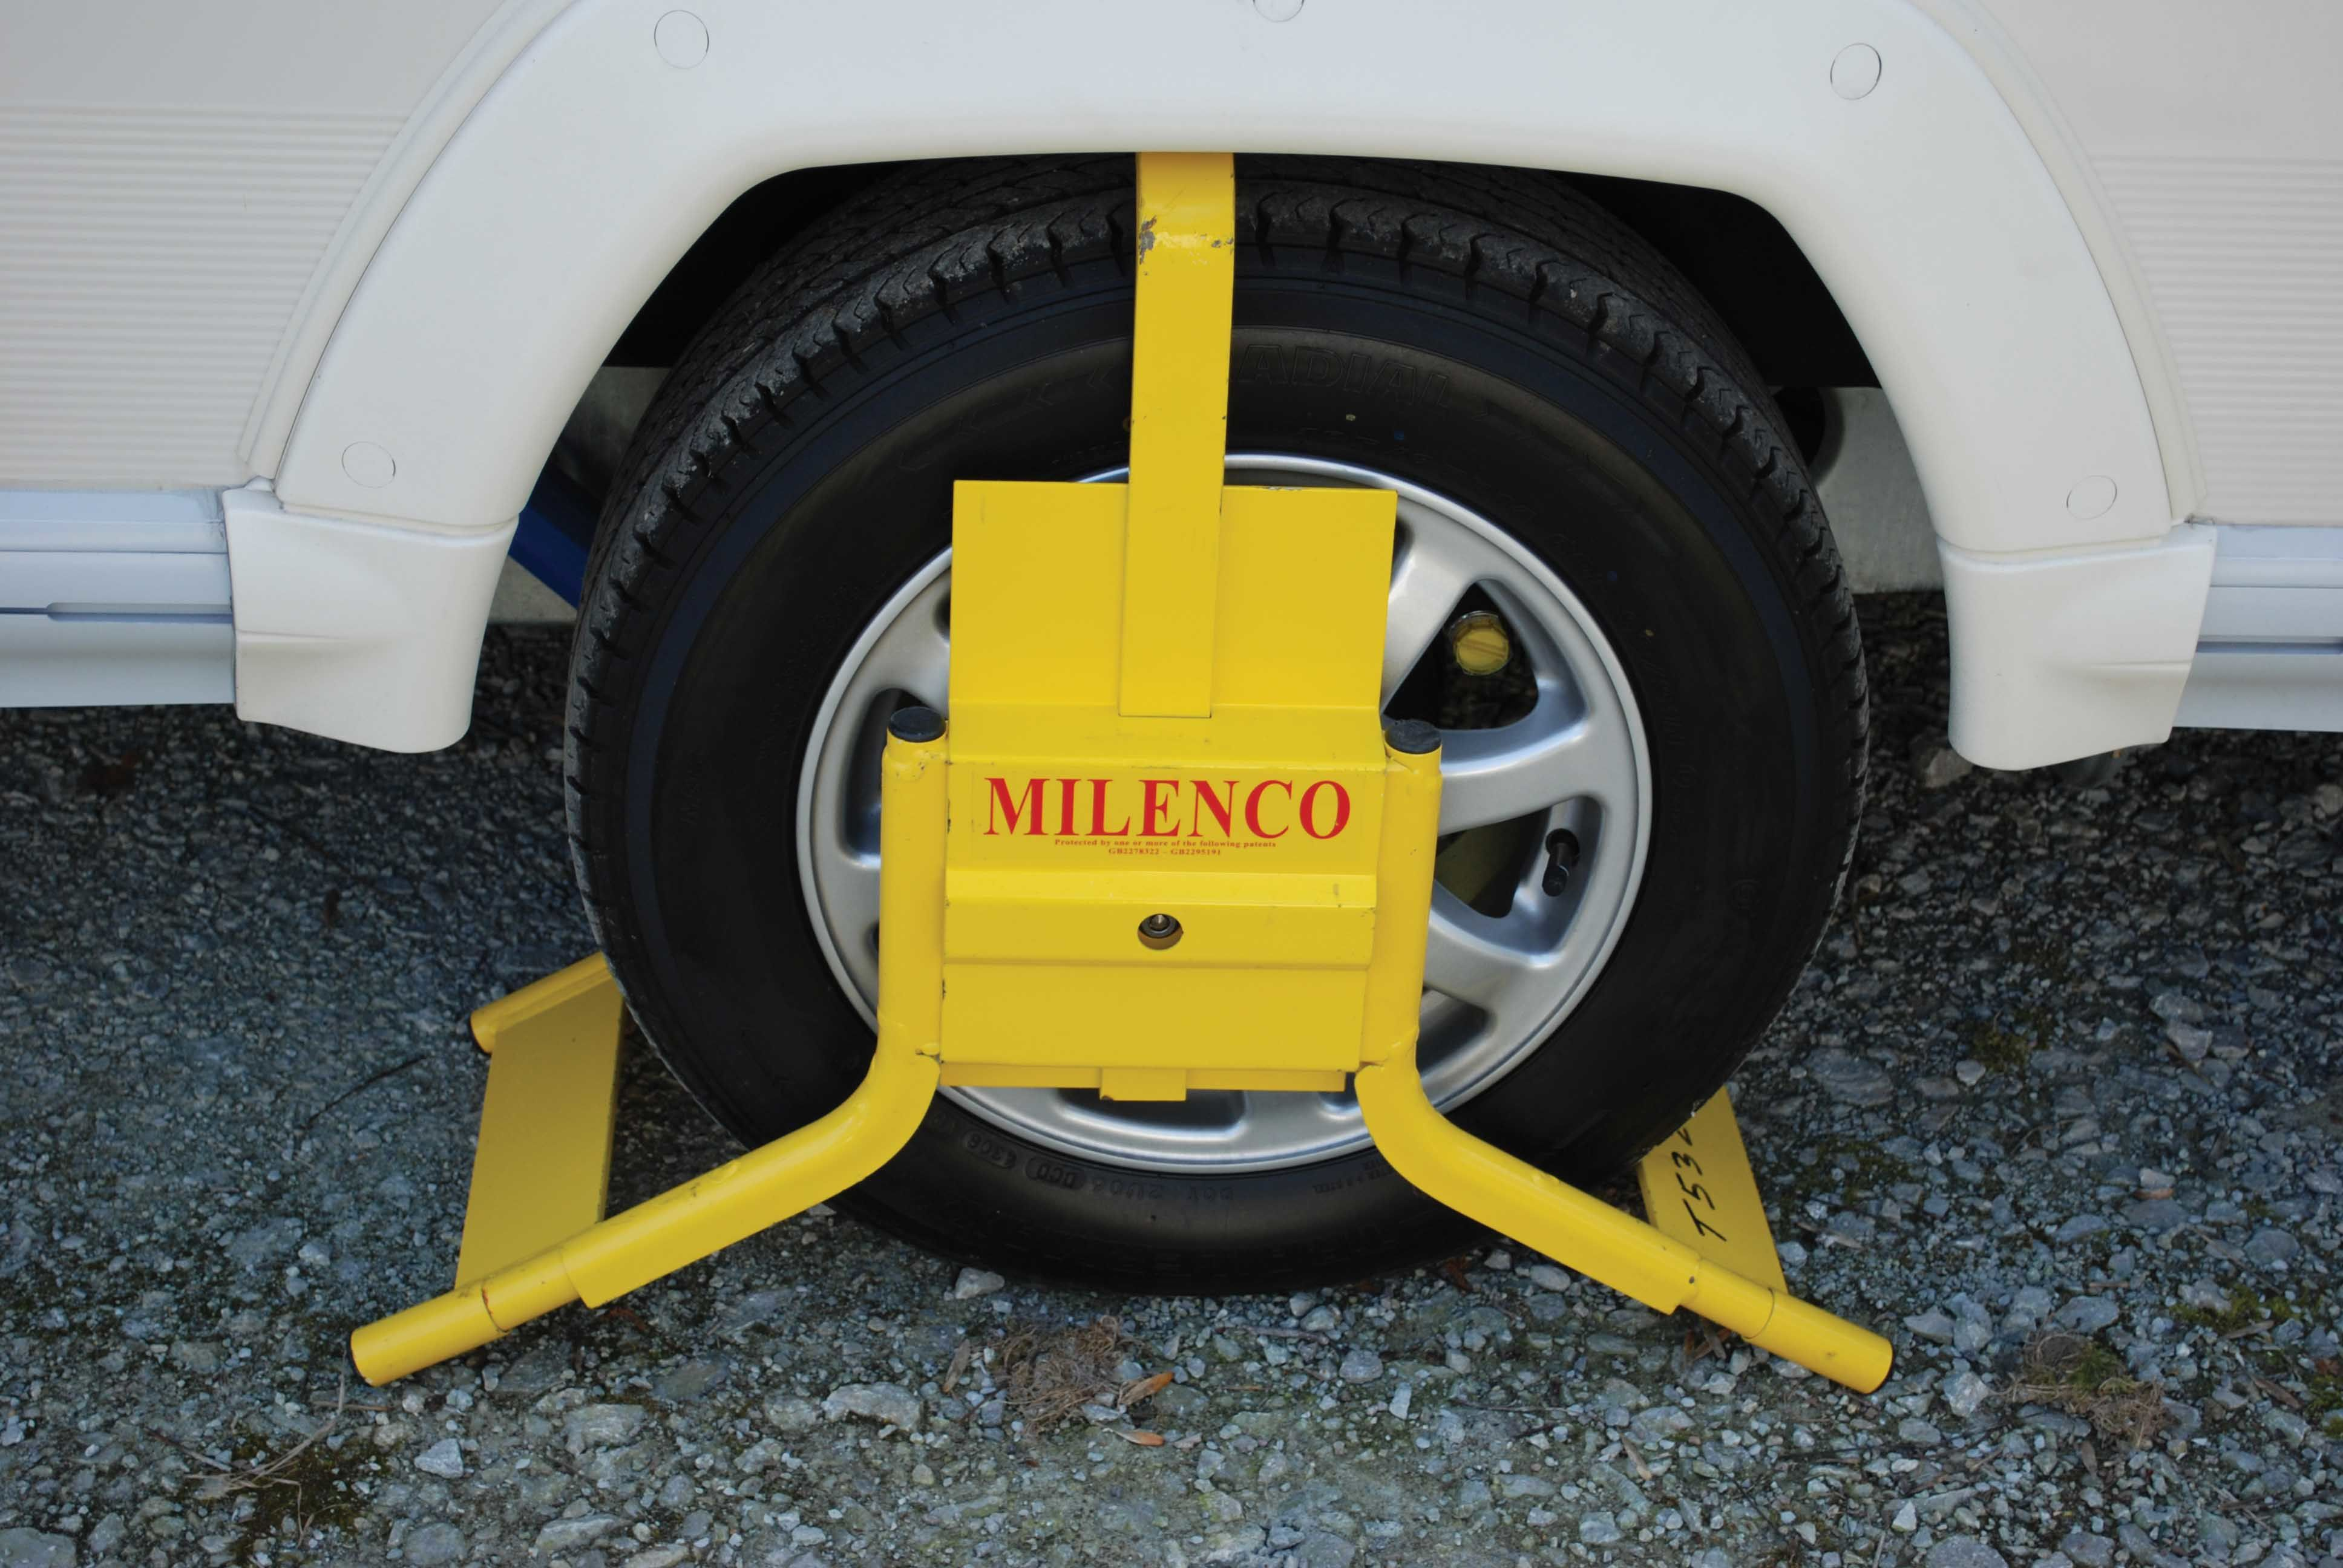 A wheel clamp in use